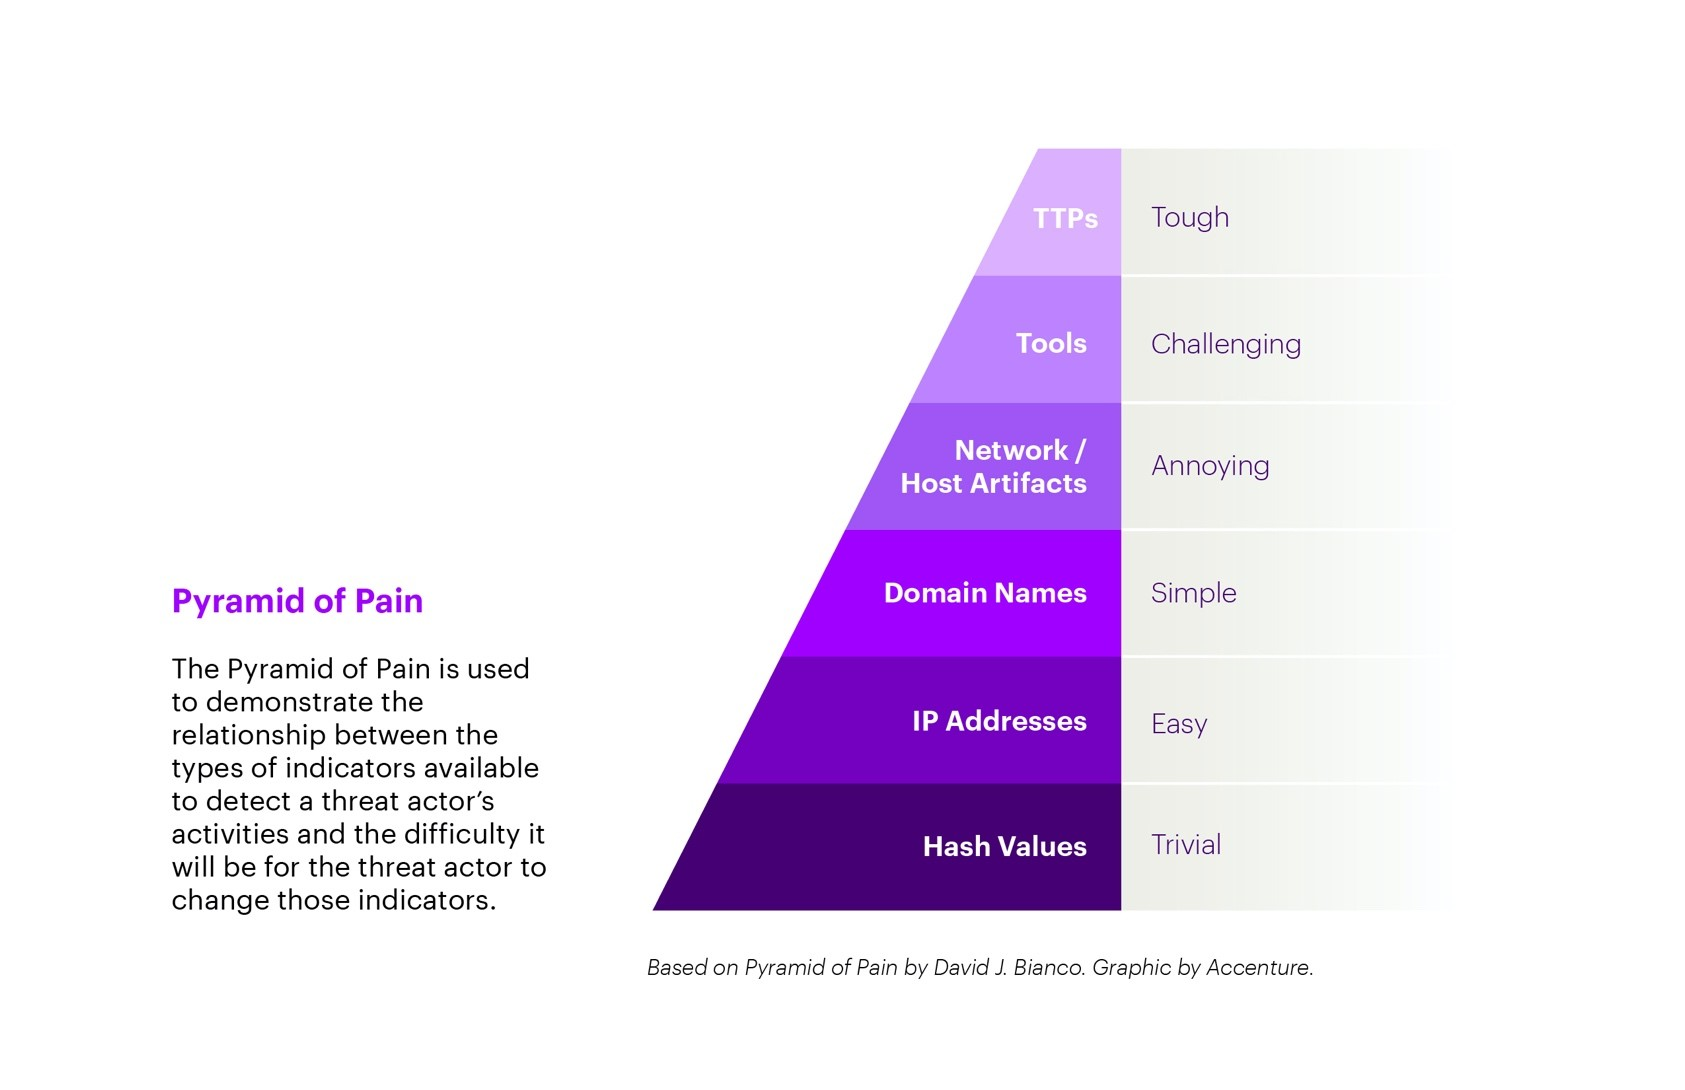 """Image shows the """"Pyramid of Pain."""" The Pyramid of Pain is used to demonstrate the relationship between the types of indicators available to detect a threat actor's activities and the difficulty it will be for the threat actor to change those indicators."""